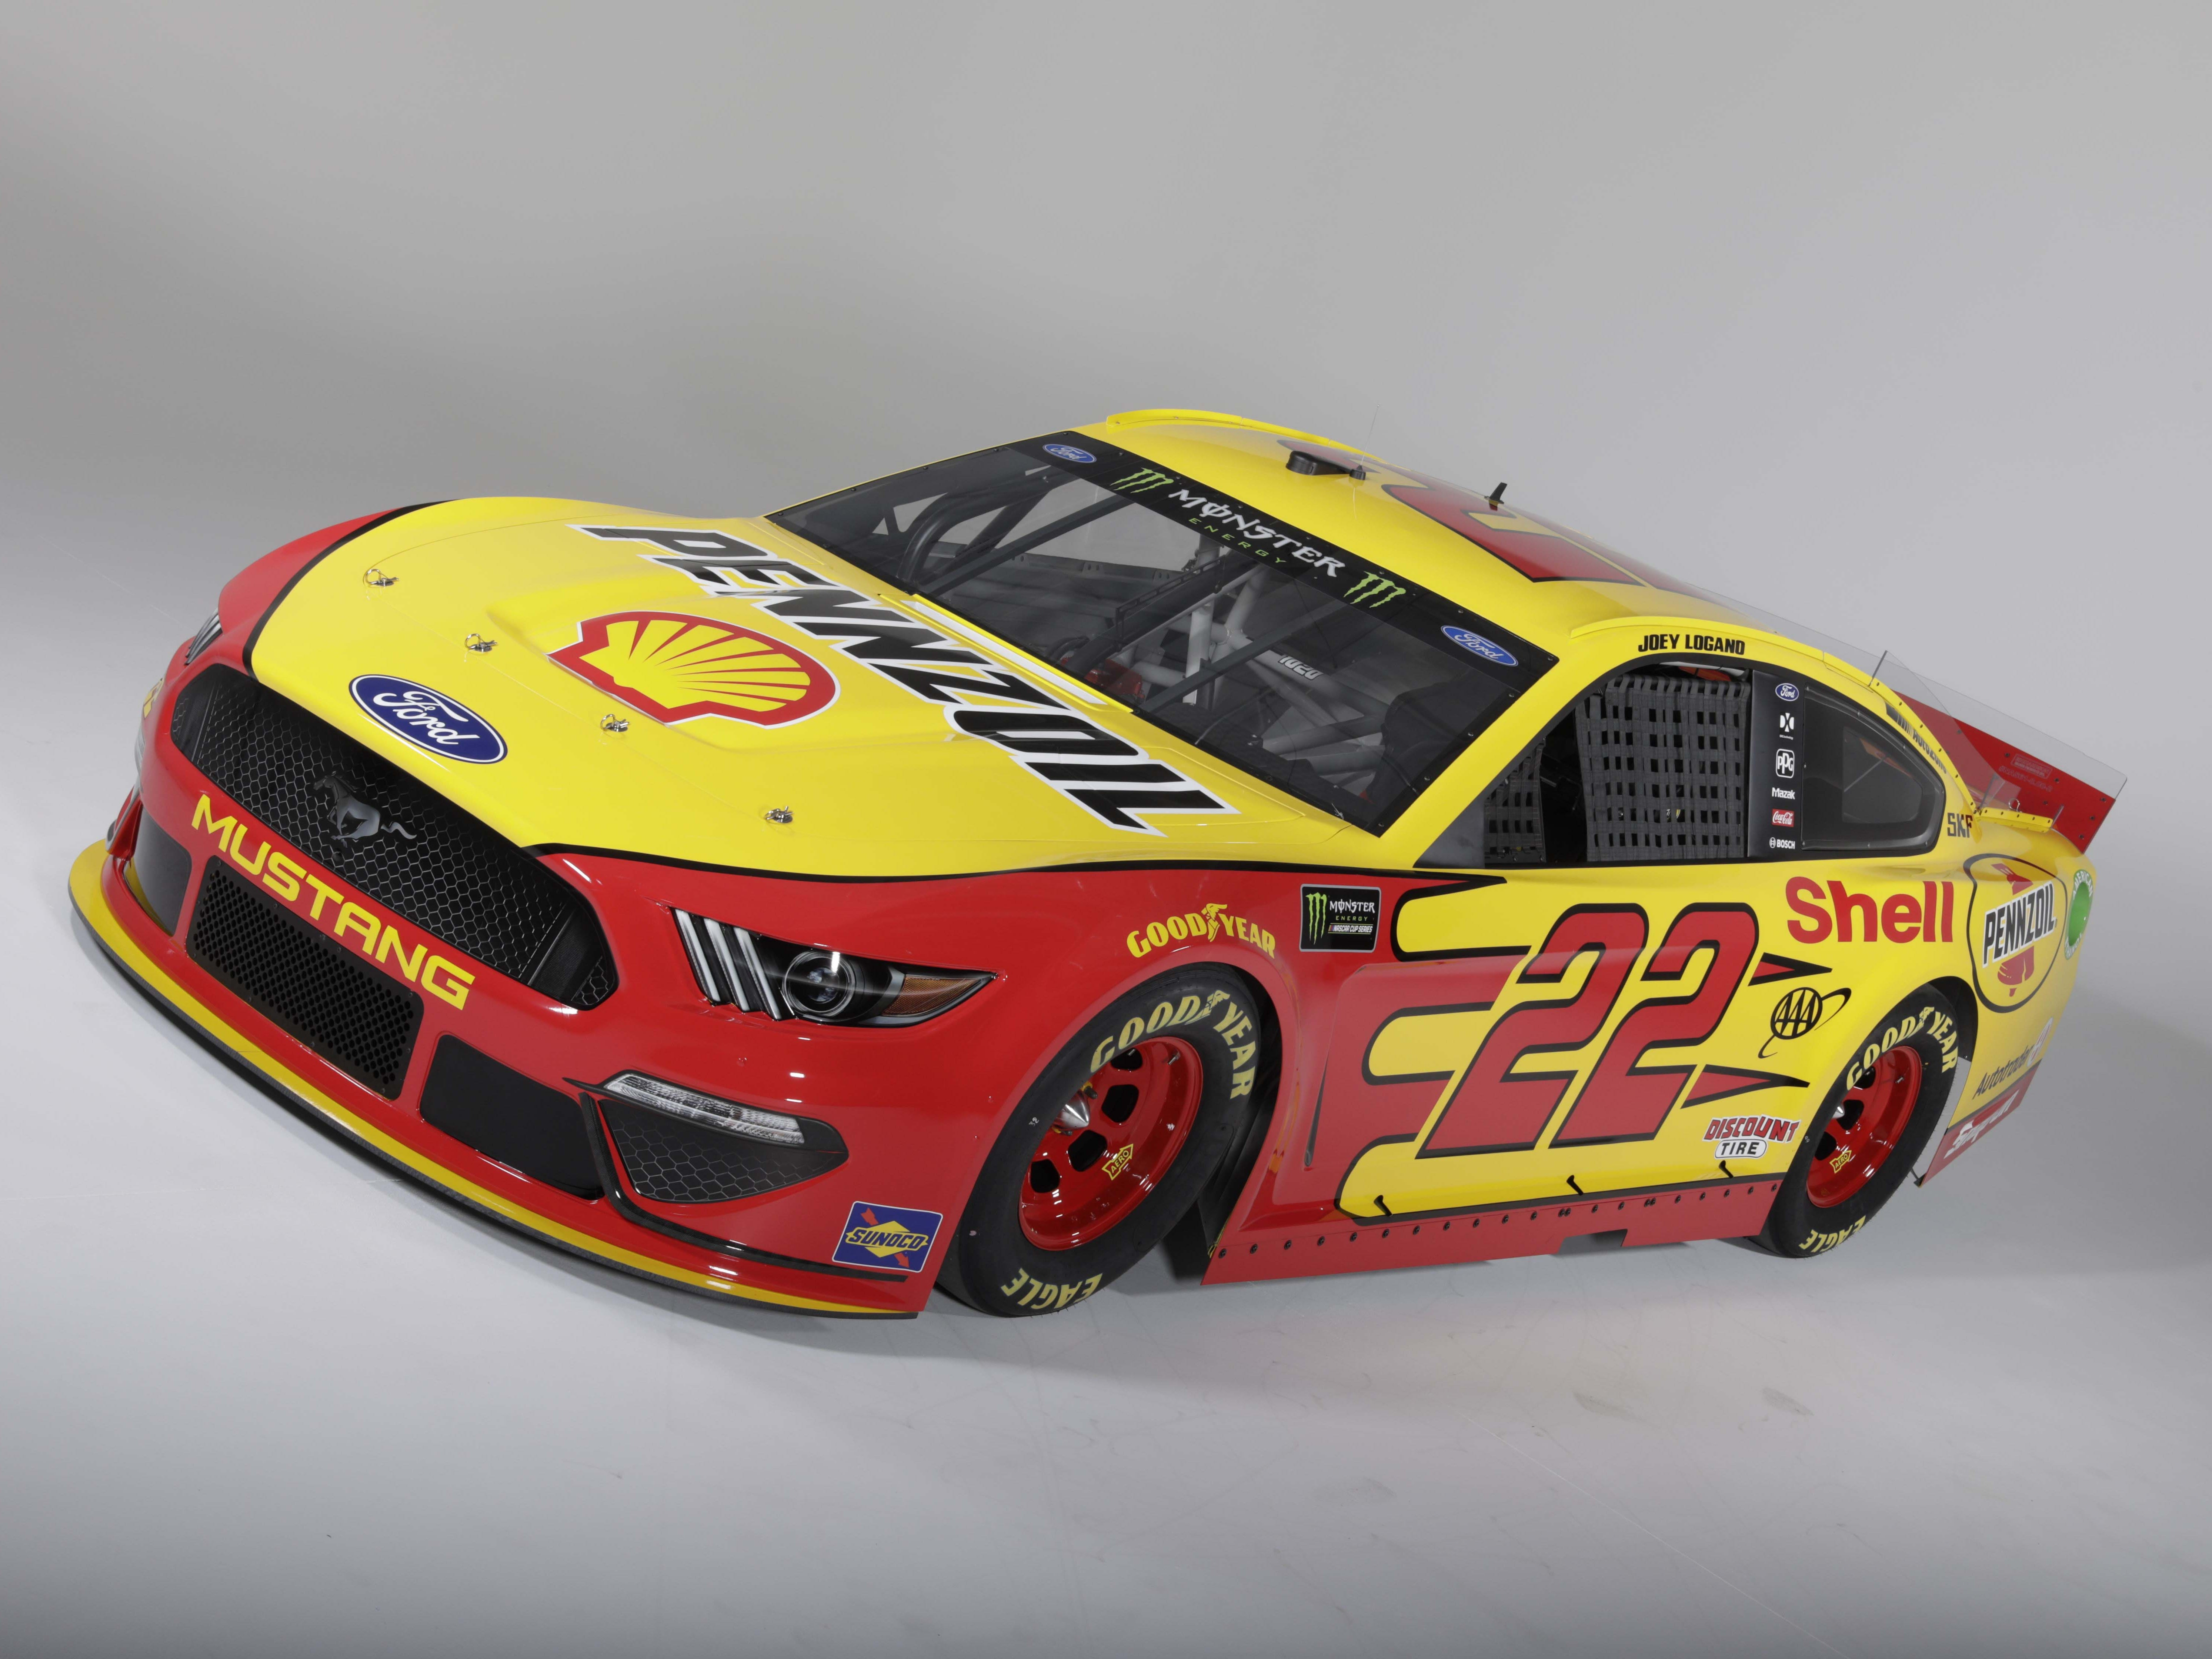 Joey Logano will defend his 2018 Monster Energy NASCAR Cup title in his new Team Penske Mustang.